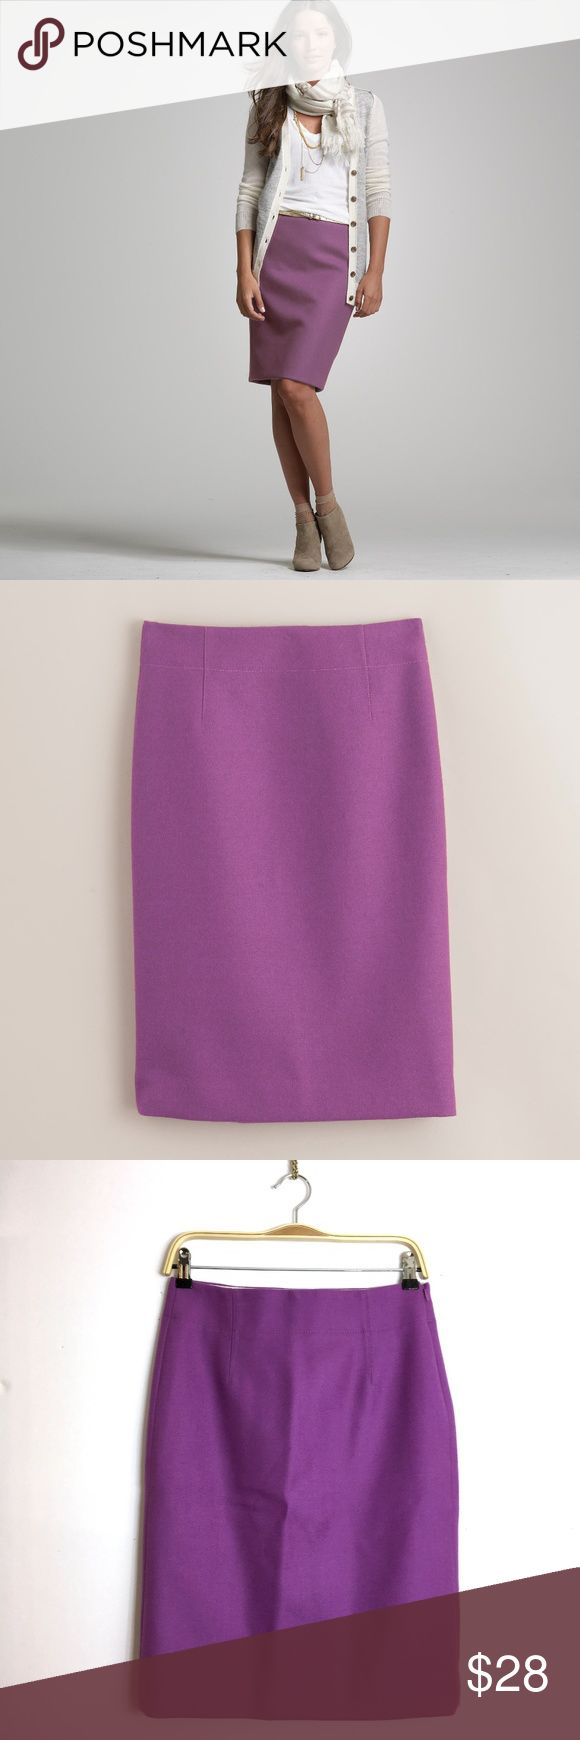 """J. Crew perfect pencil skirt in Wool fresh plum Retail: $118  Size 2 Length: 23"""" Waist: 15"""" Hips: 18.5""""  A leg-lengthening pencil skirt, now with long darts at the front and back waistband for an even more flattering fit. The lustrous wool—a distinctive twilled weave with a very refined finish—is from a century-old Japanese weaving mill. J. Crew Skirts Pencil"""